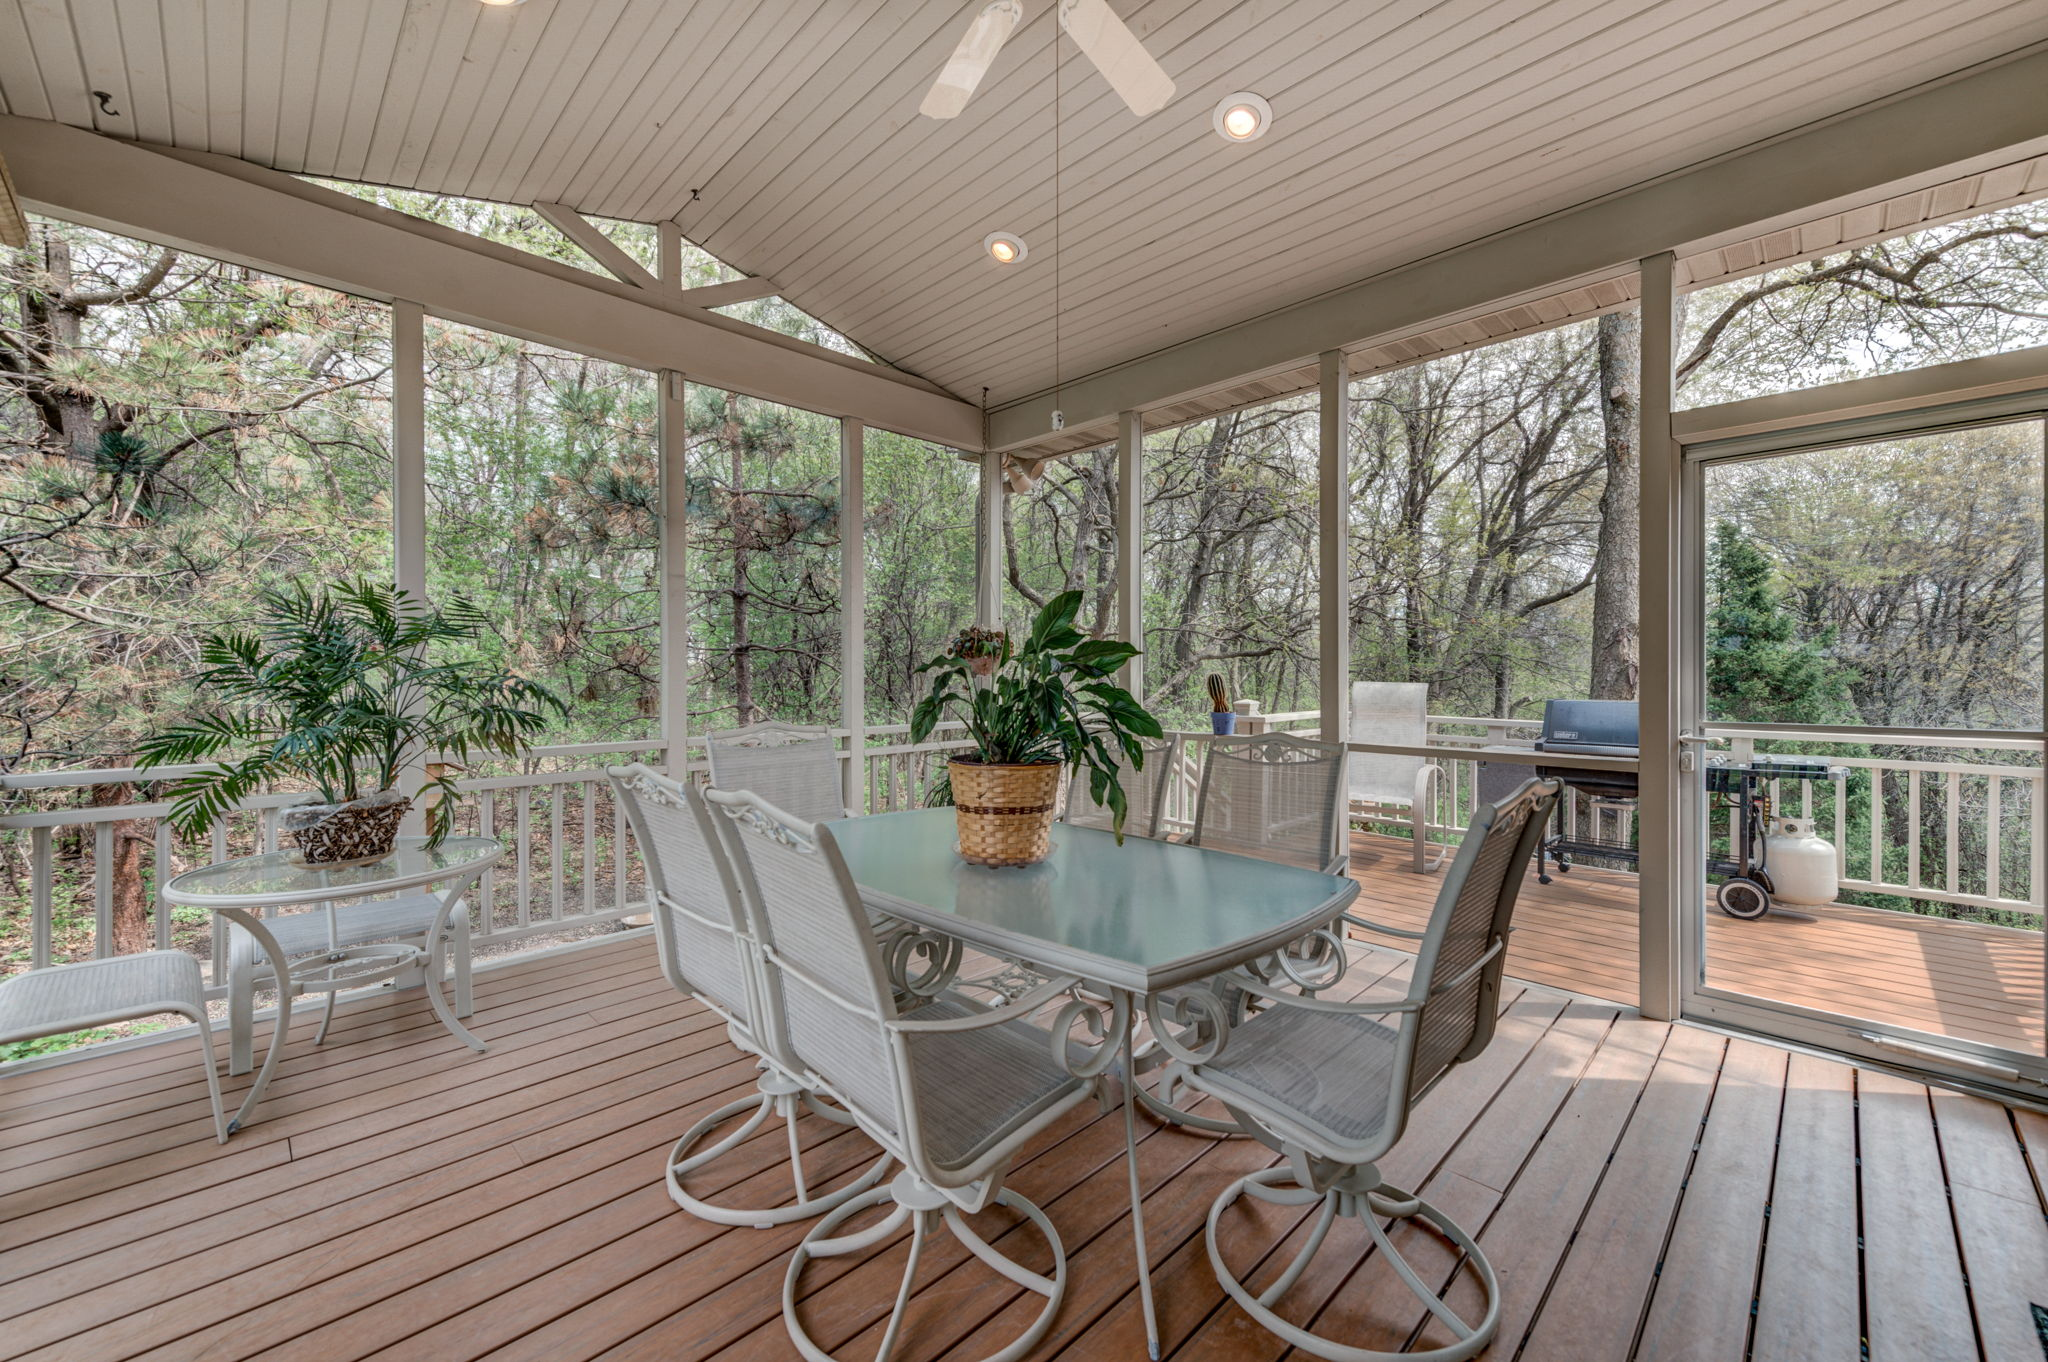 Lovely screen porch and maintenance free deck